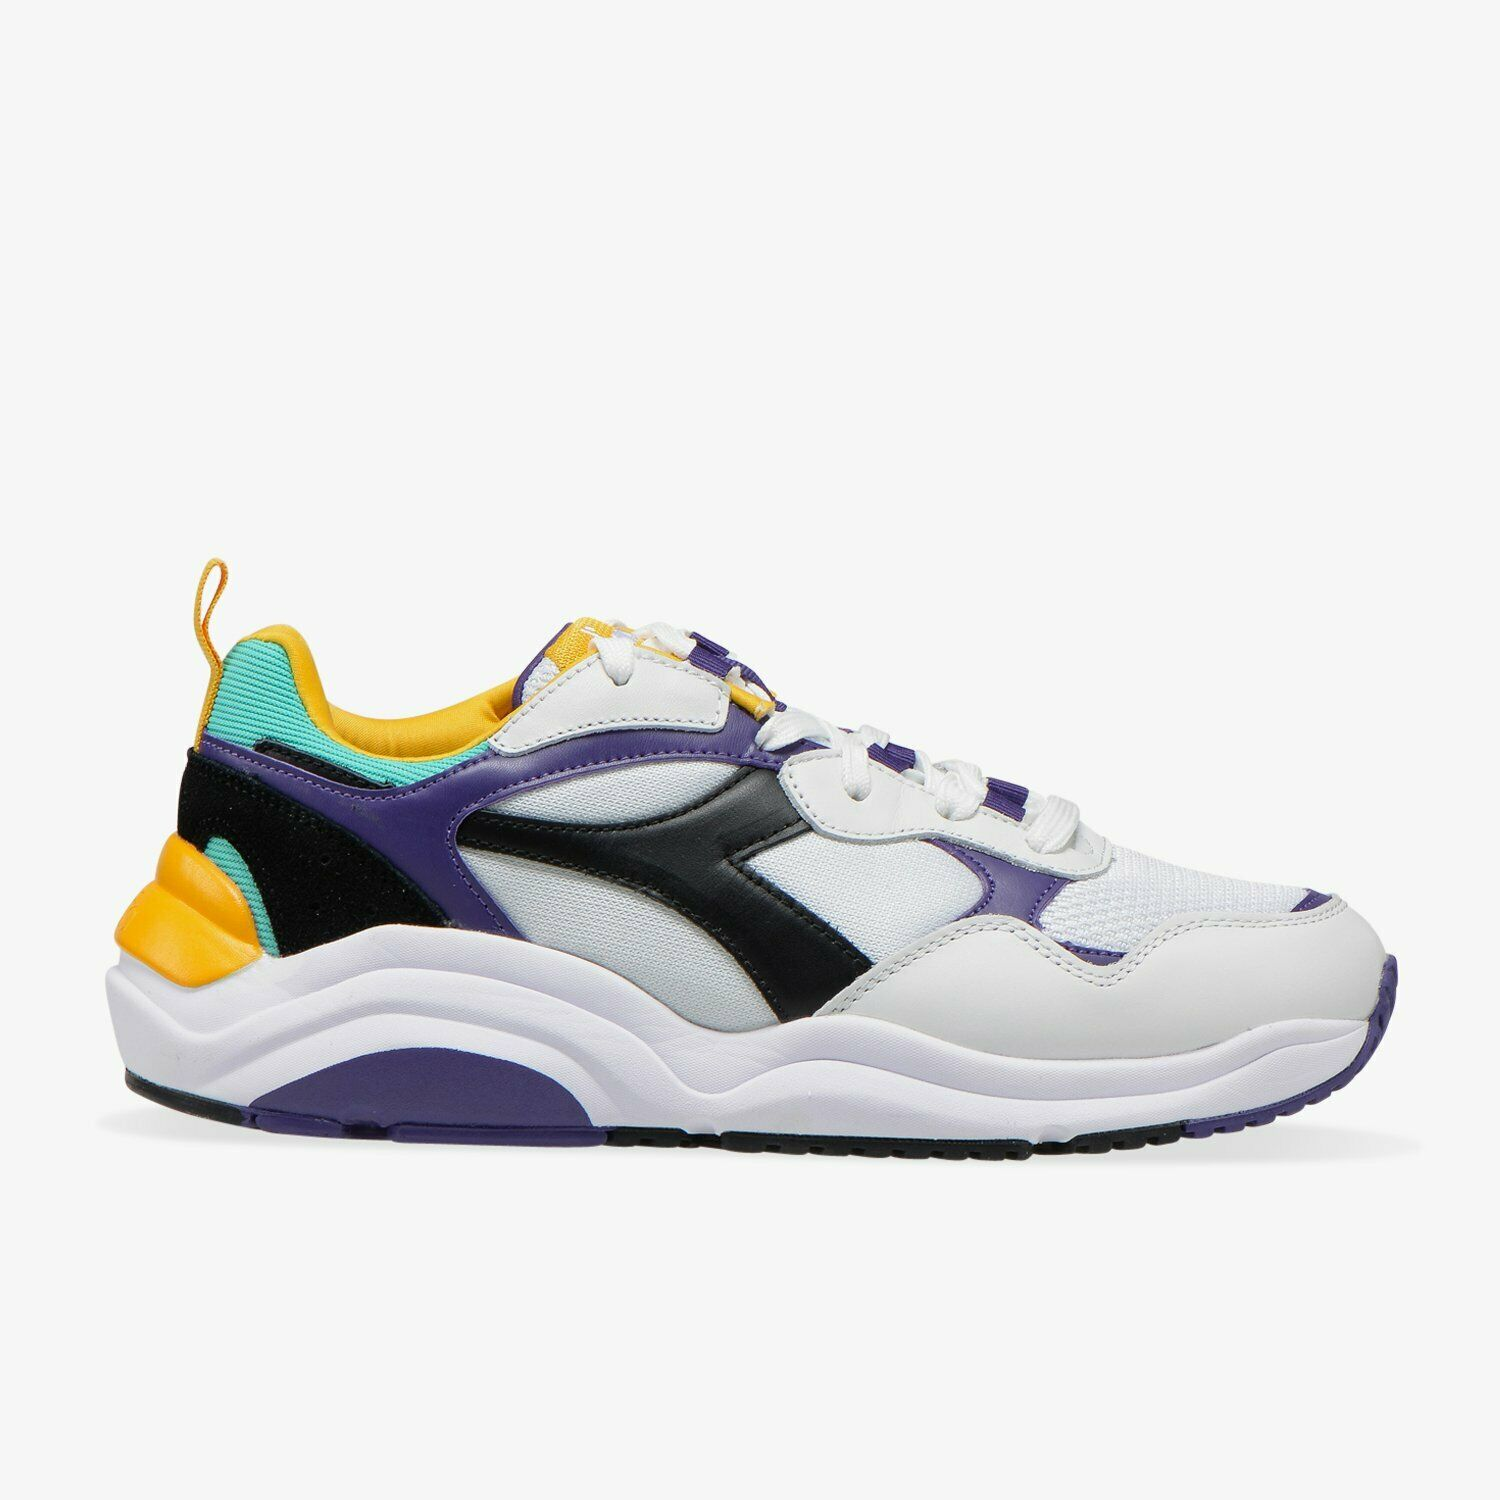 Diadora WHIZZ RUN baskets hommes blanc noir celeste